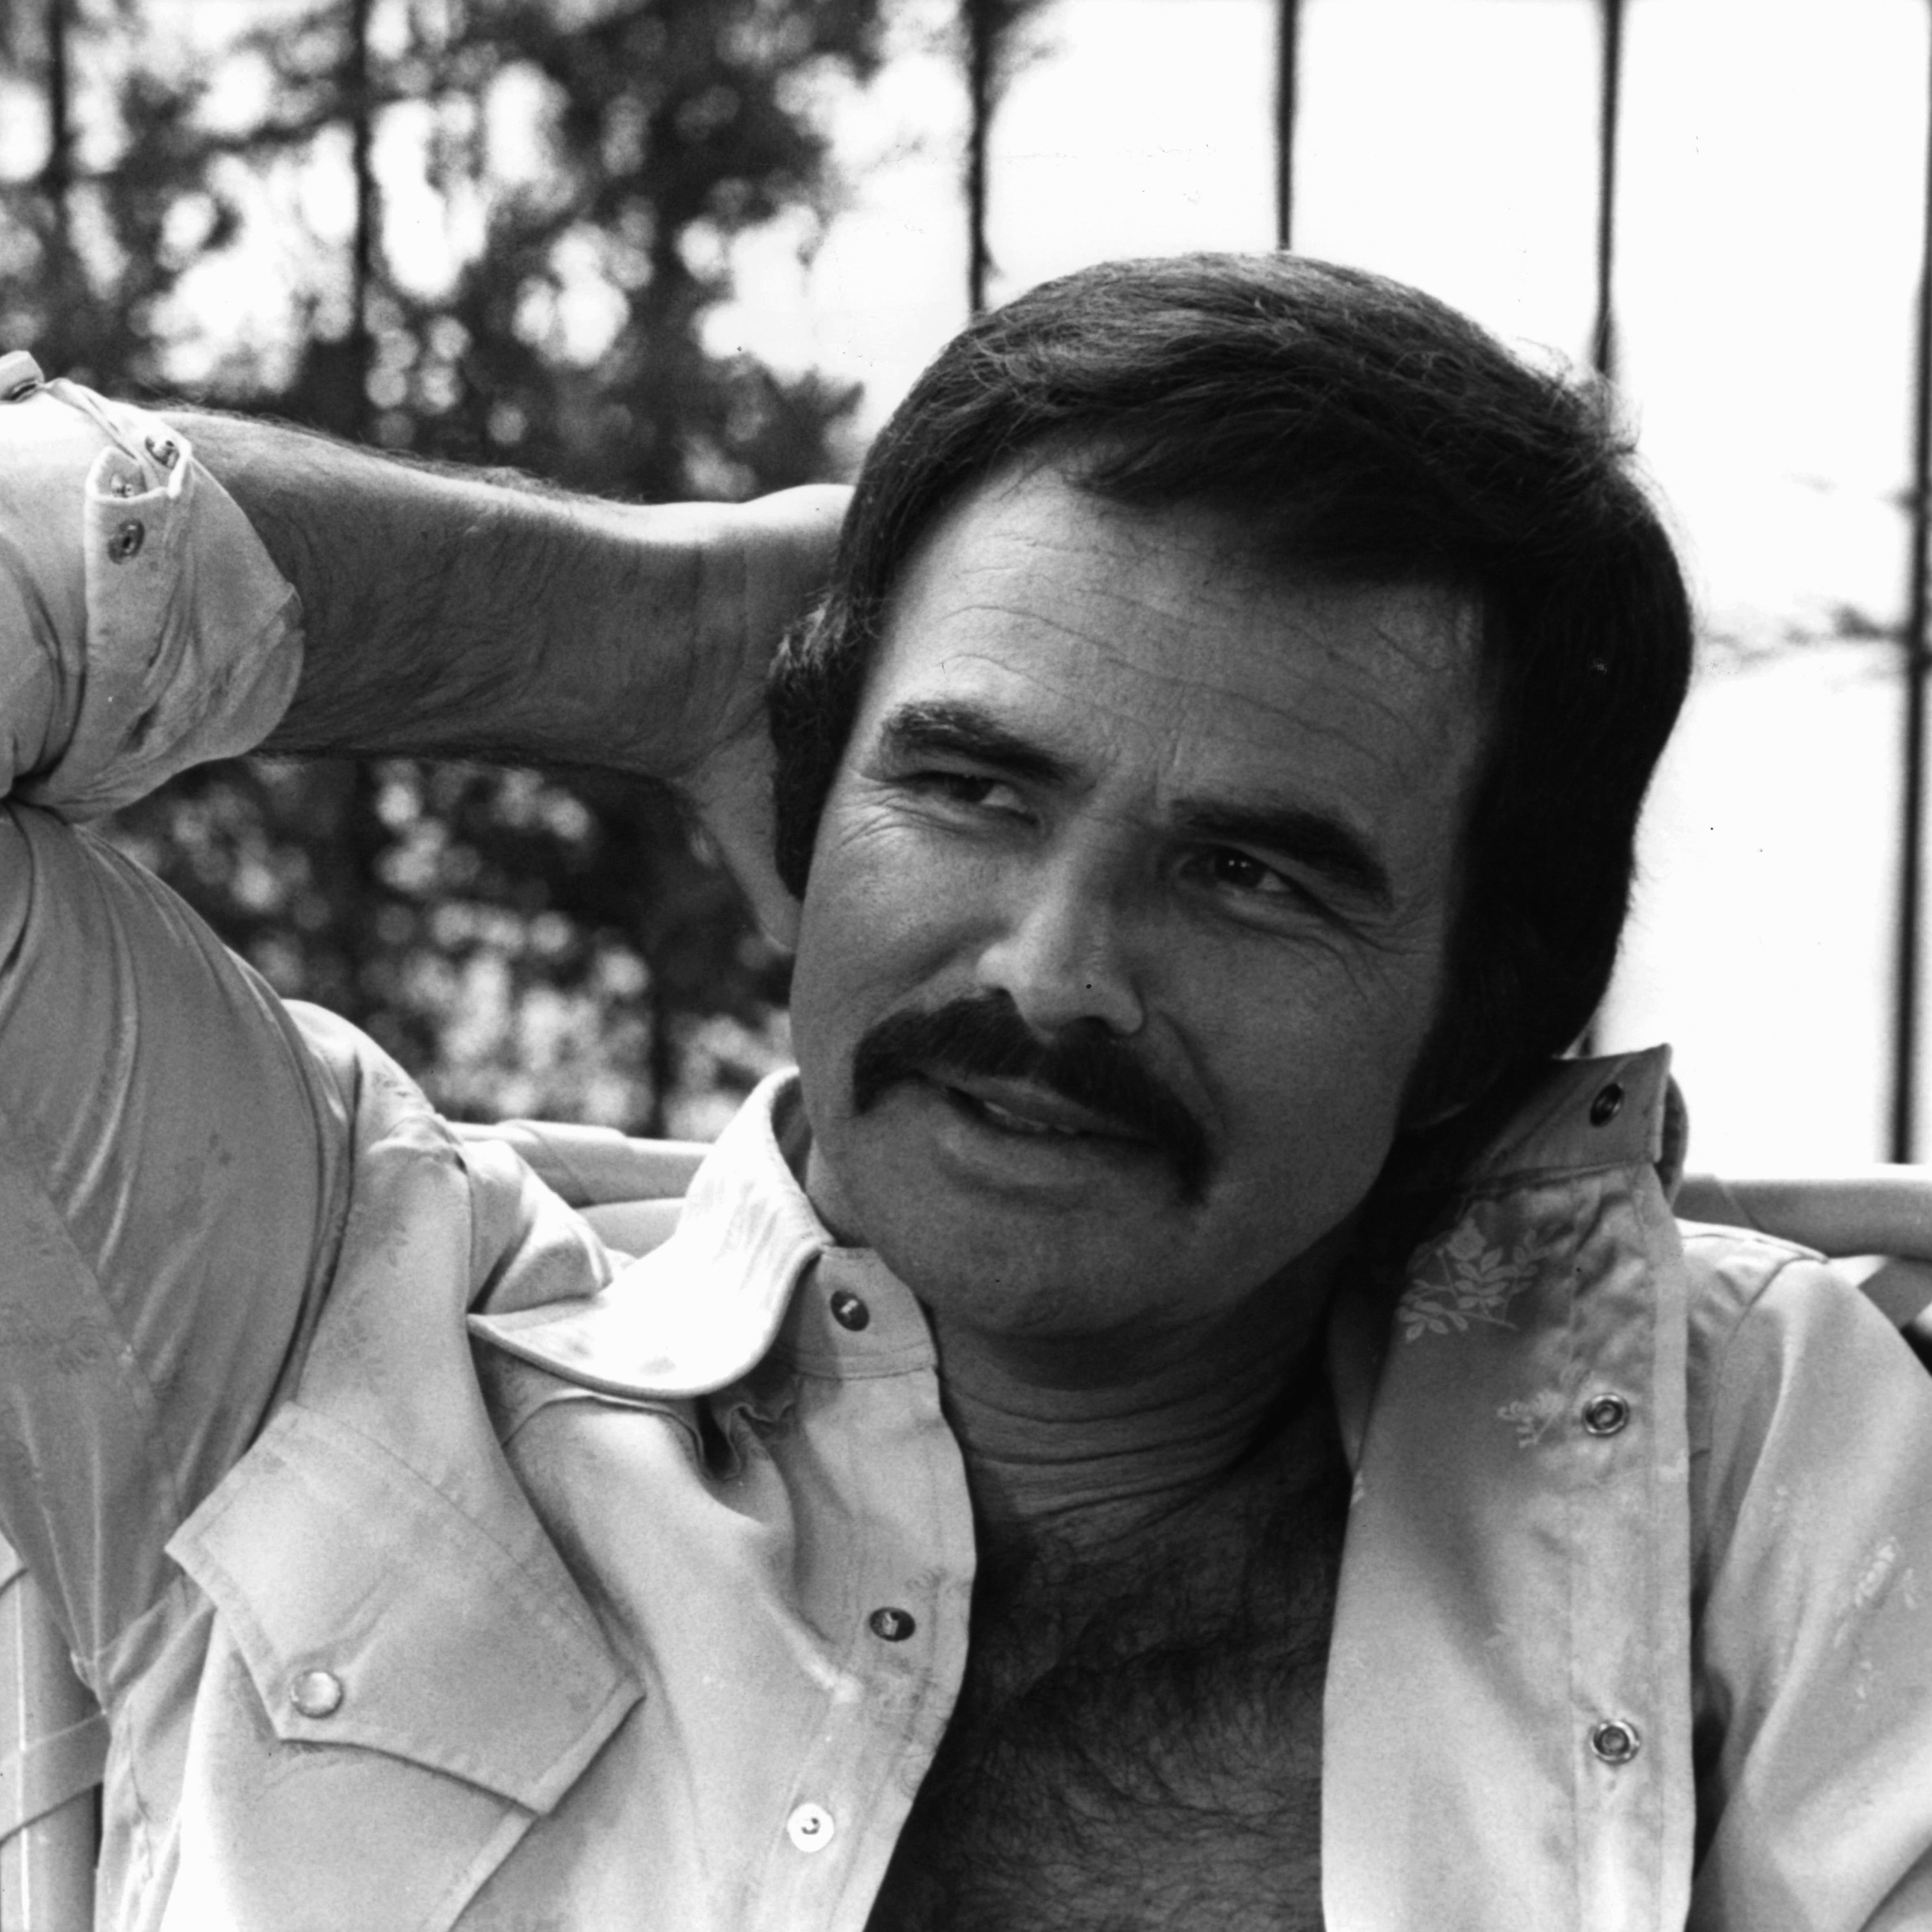 1980: Burt Reynolds Burt Reynolds defined the macho, rugged masculinity of '80s film and TV heartthrobs thanks to his signature bold mustache.